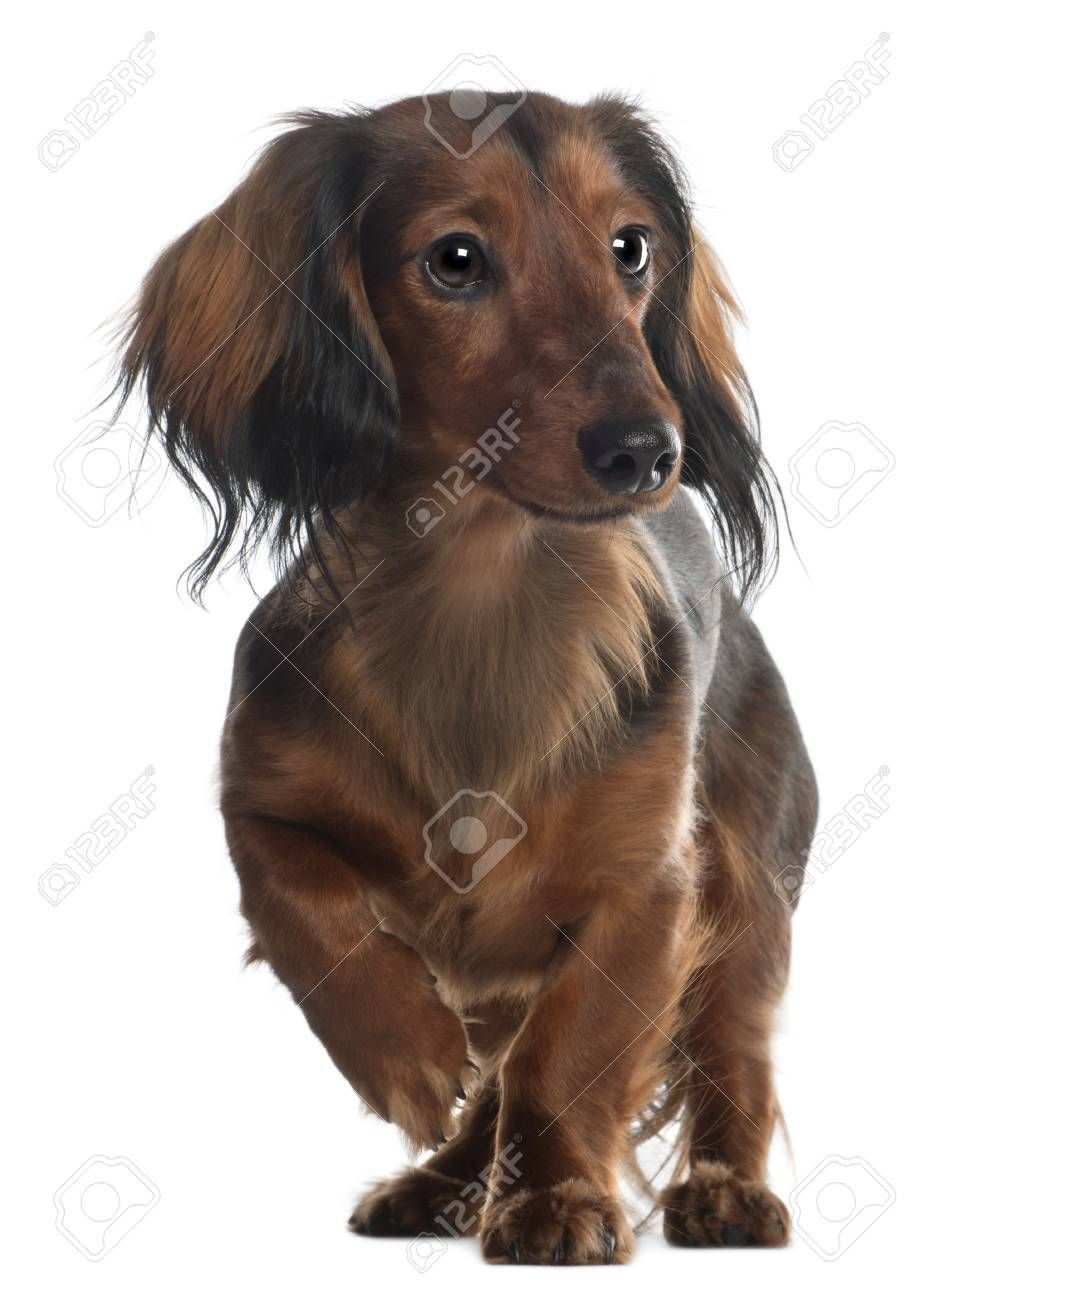 Dachshund 10 Months Old Standing In Front Of White Background